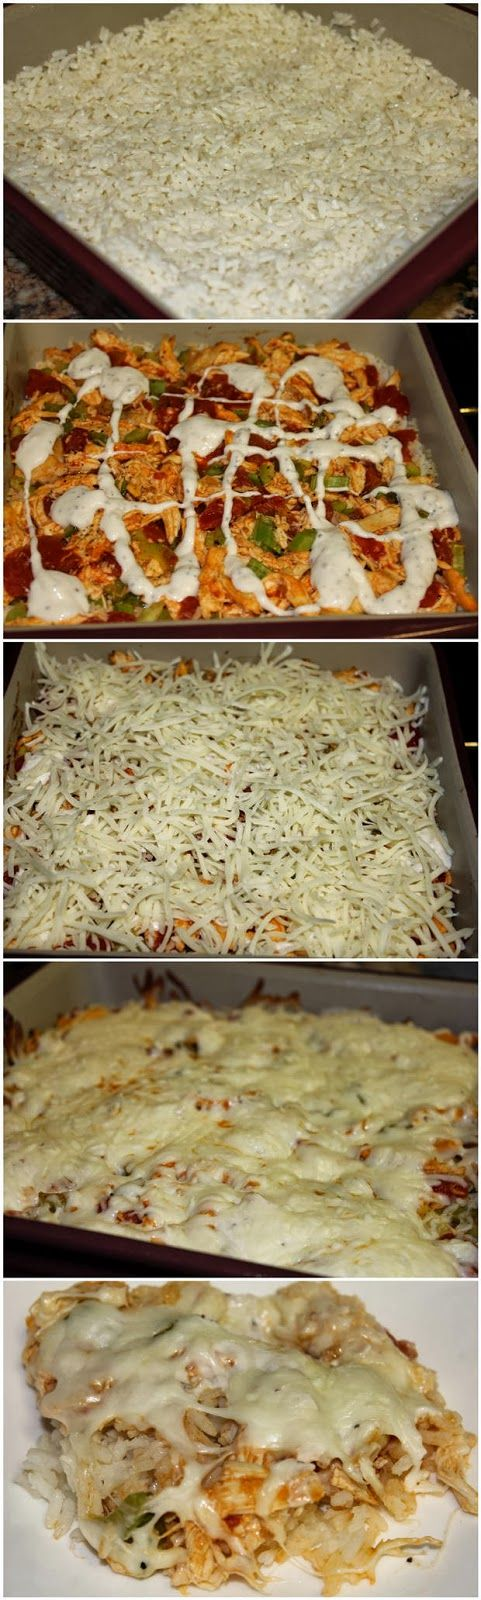 Buffalo Chicken Casserole- I just made tonight and oh is this good! But instead of the blue cheese I used Ranch dressing